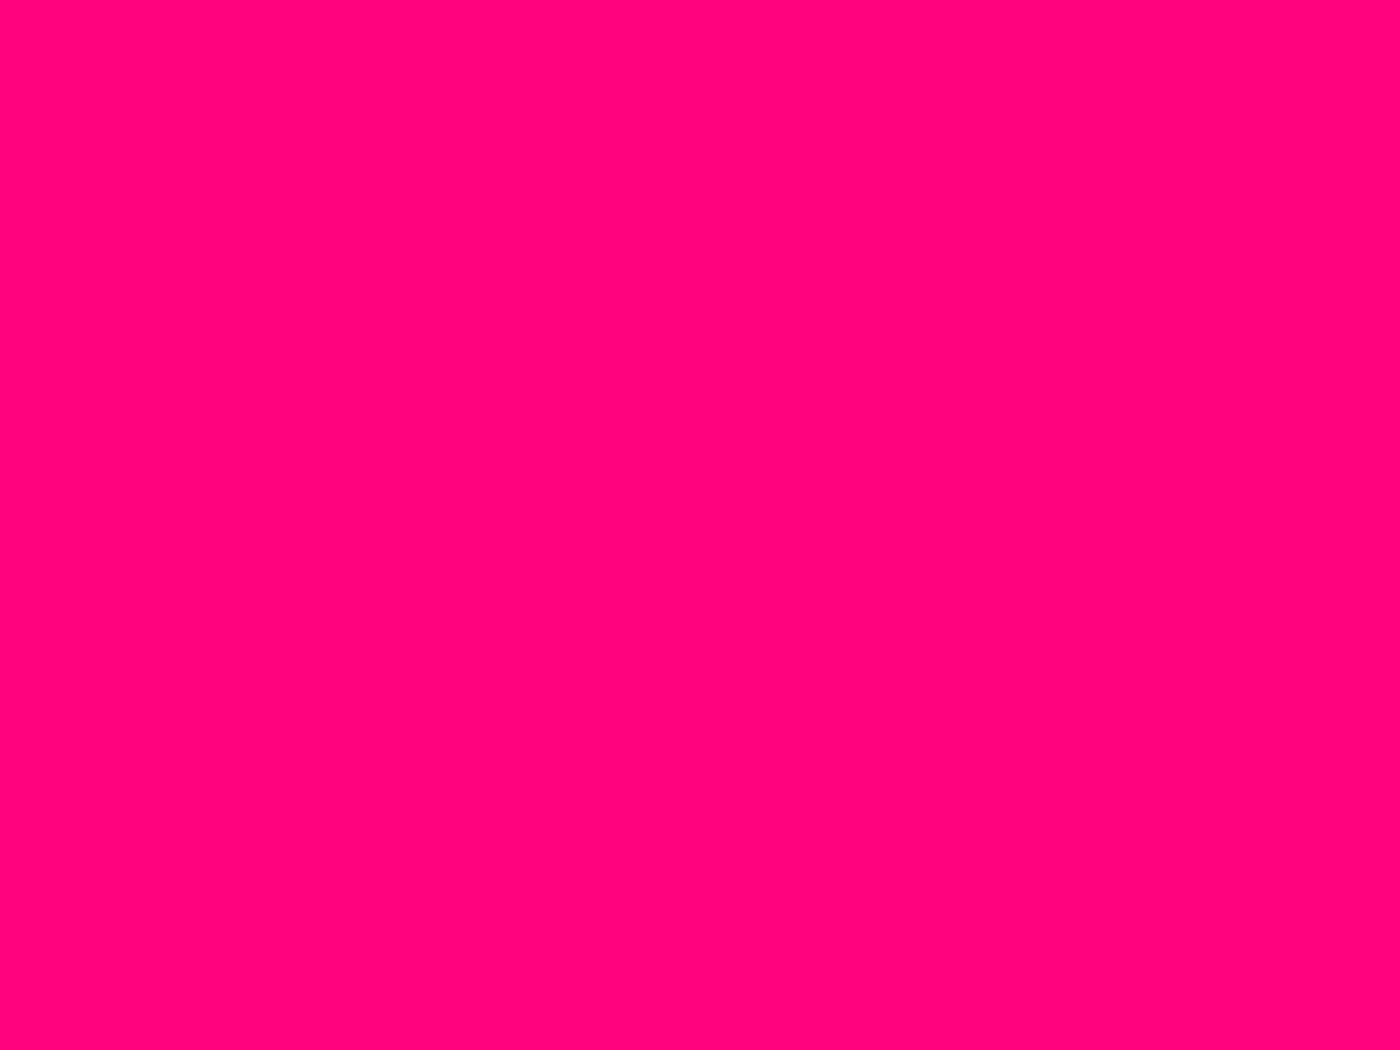 1400x1050 Bright Pink Solid Color Background